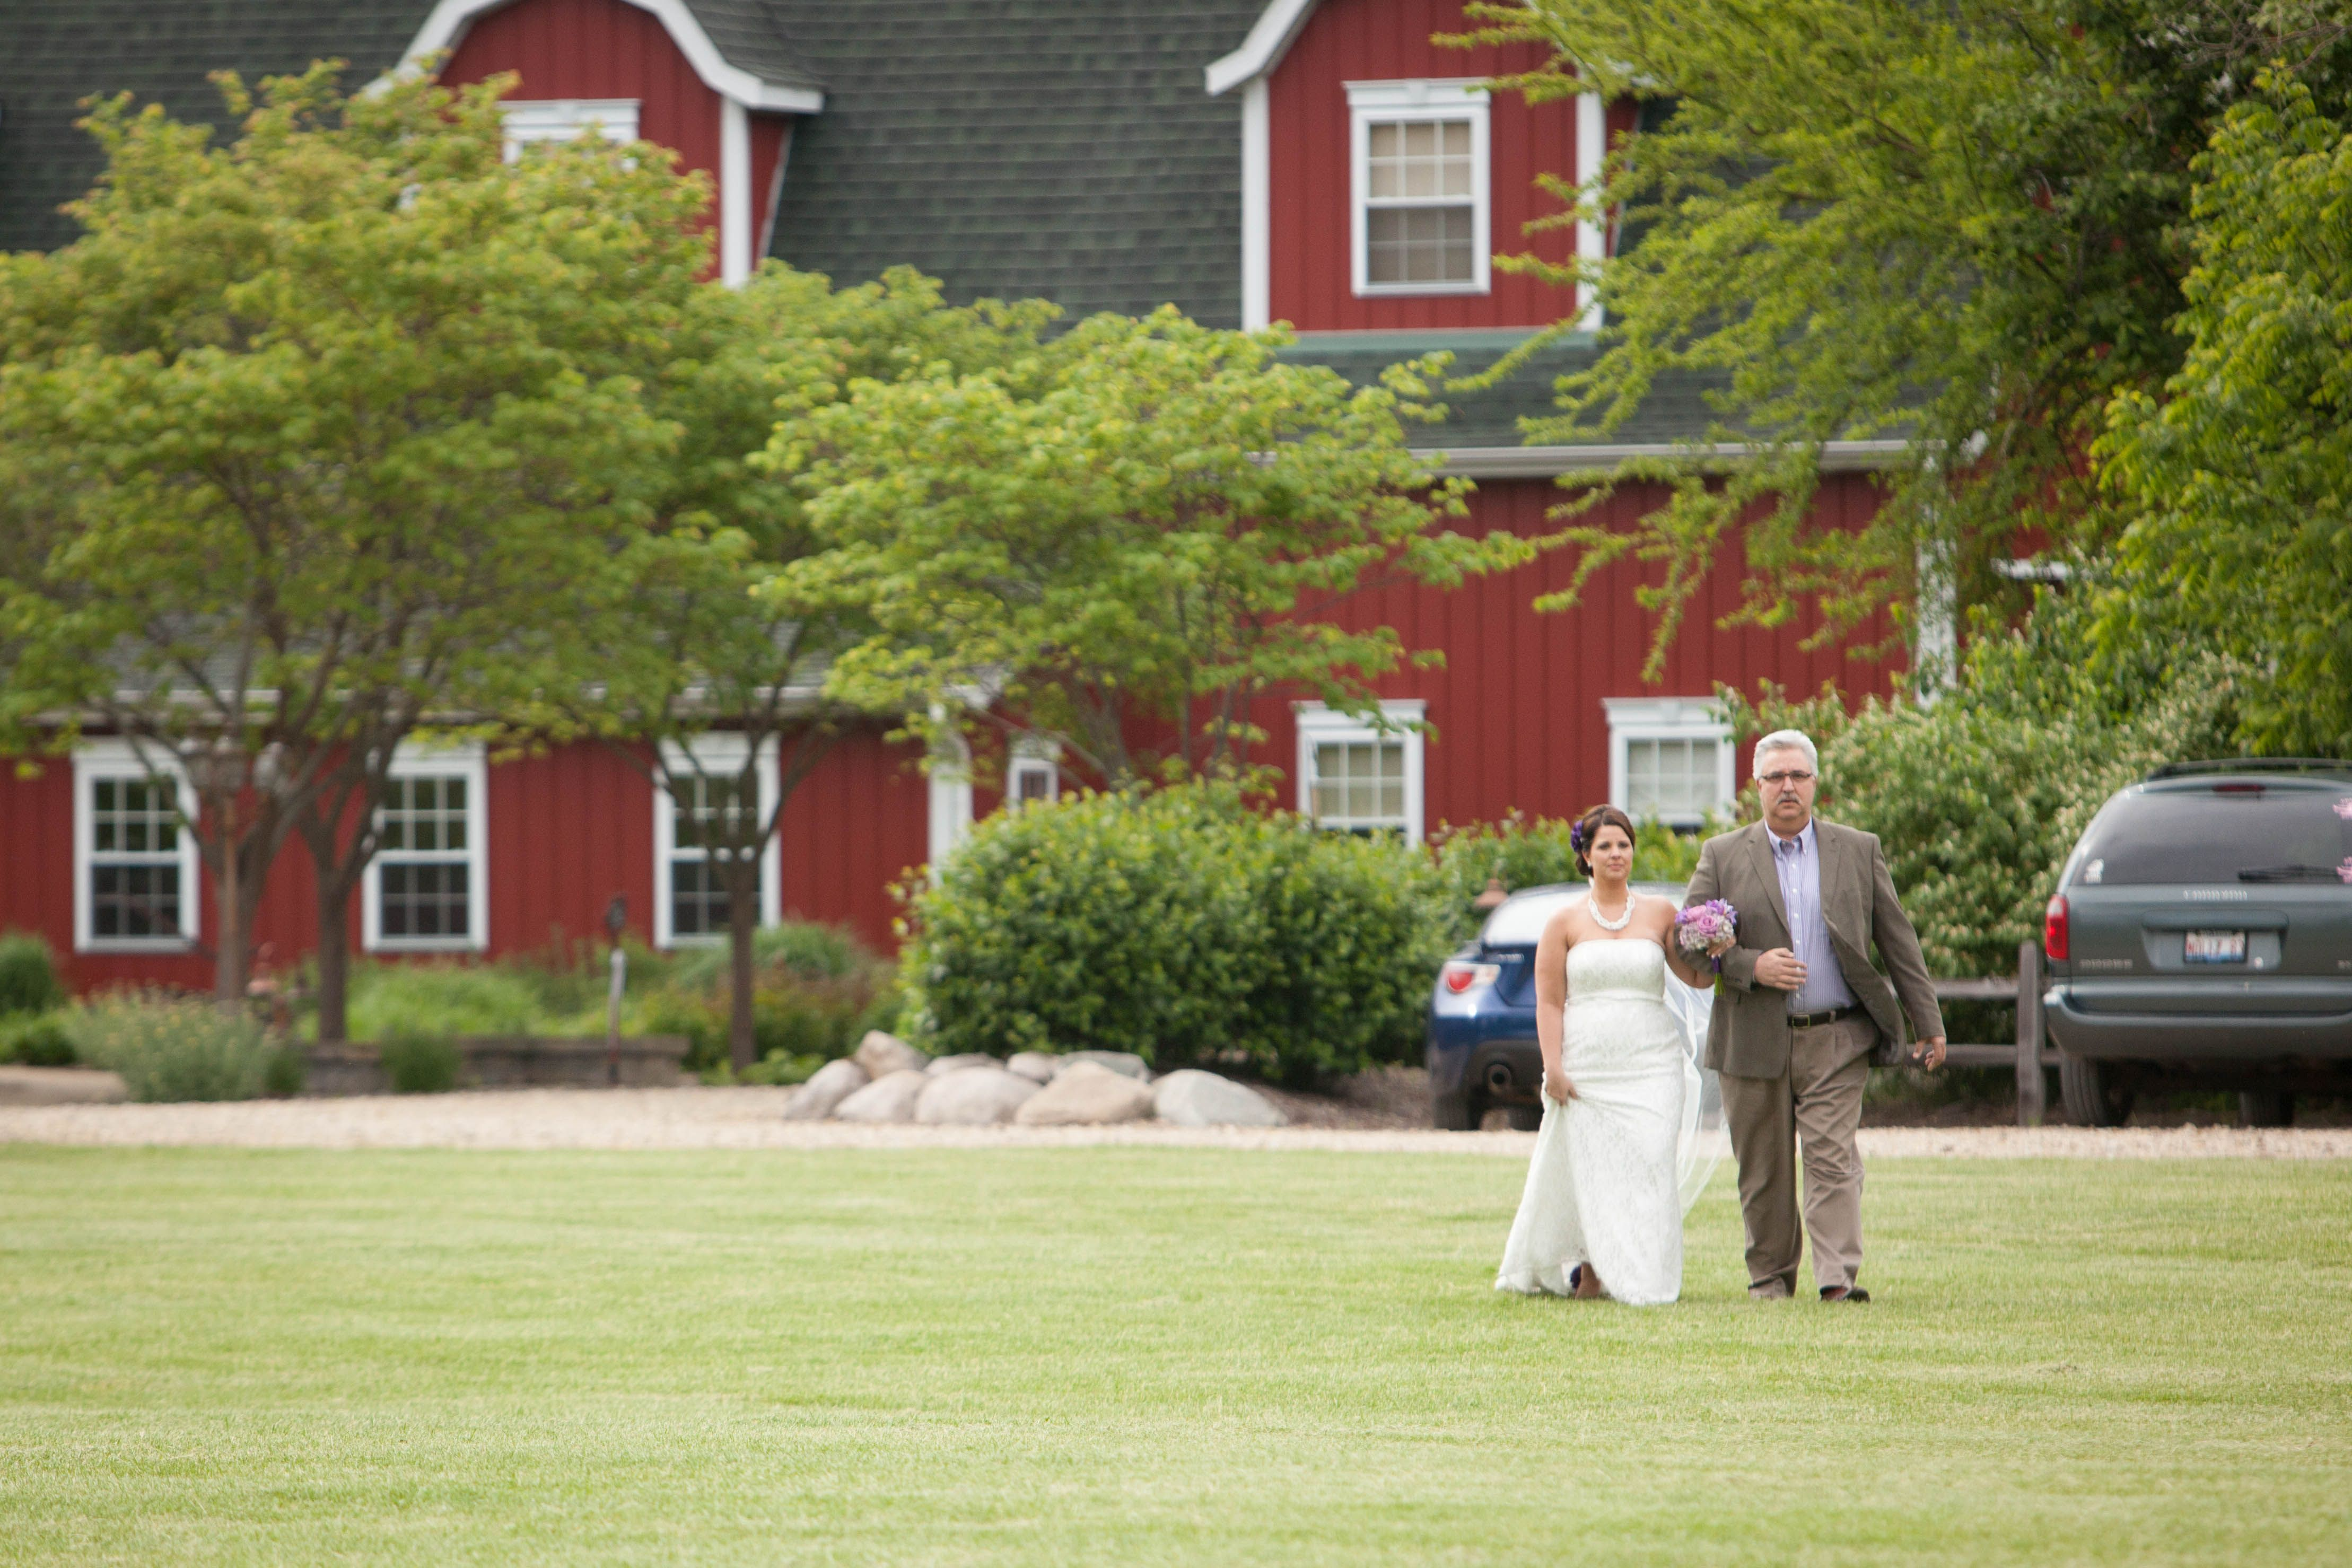 Illinois Wedding Packages Central IL Specials Champaign Weddings Outdoor In